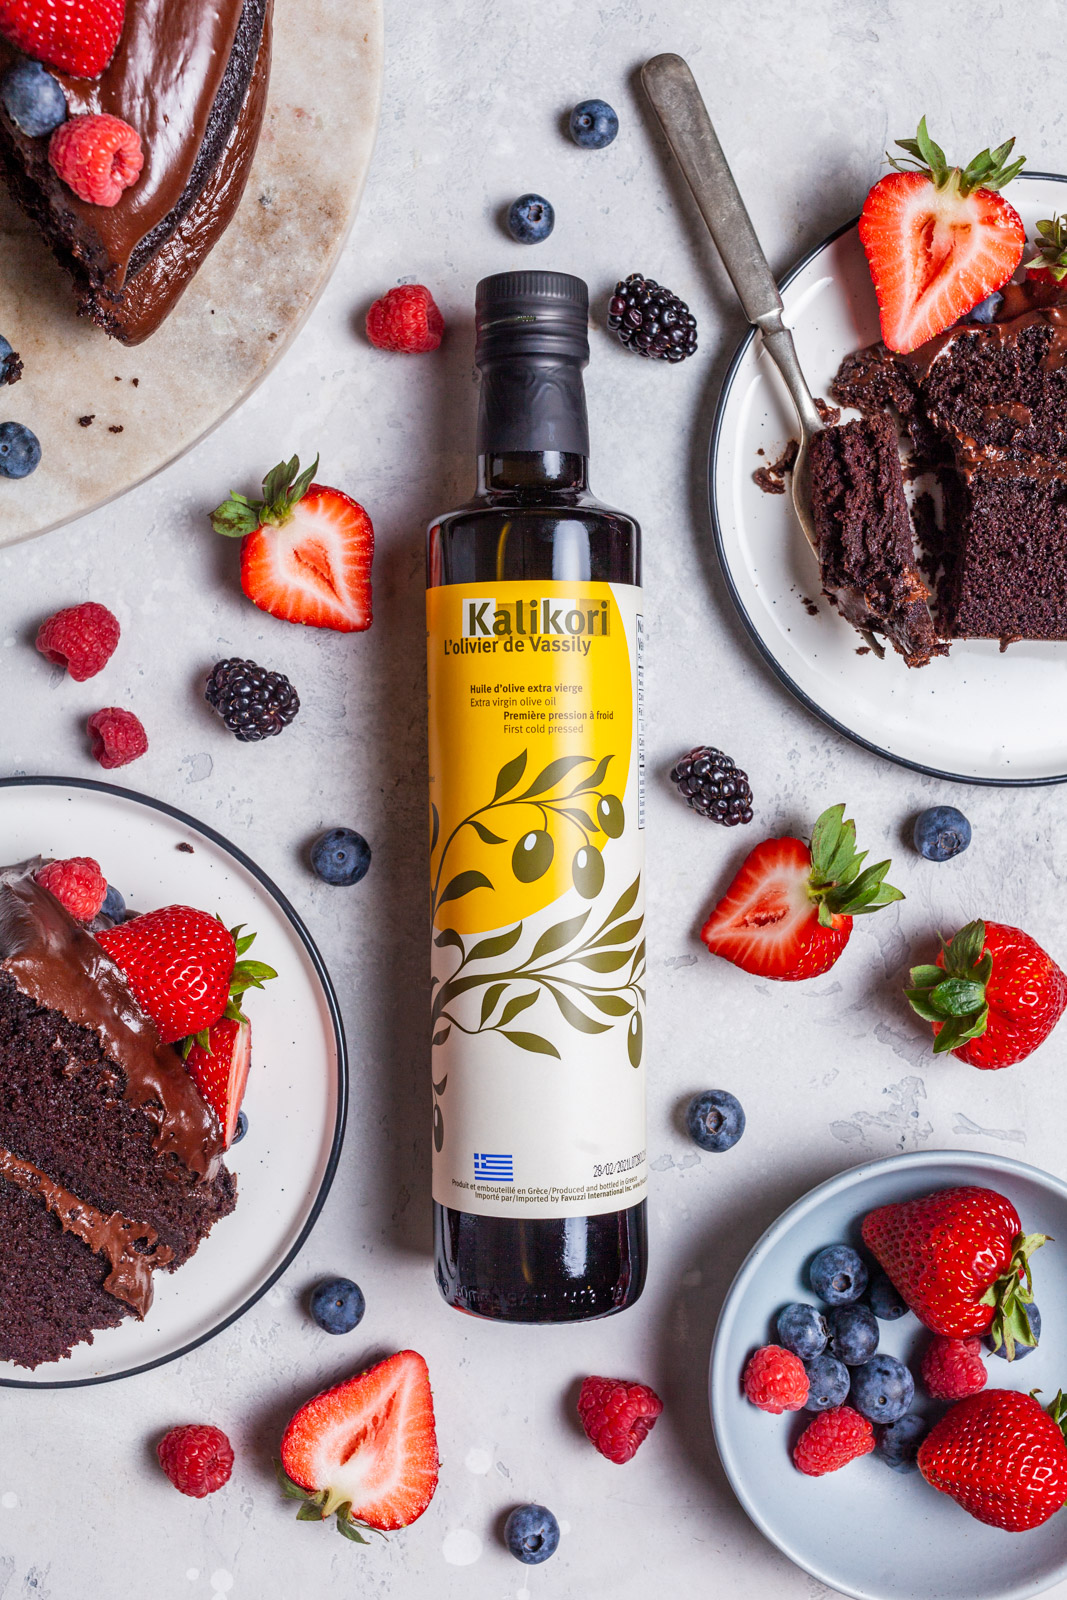 Vegan Chocolate Olive Oil Cake With Olive Oil Frosting